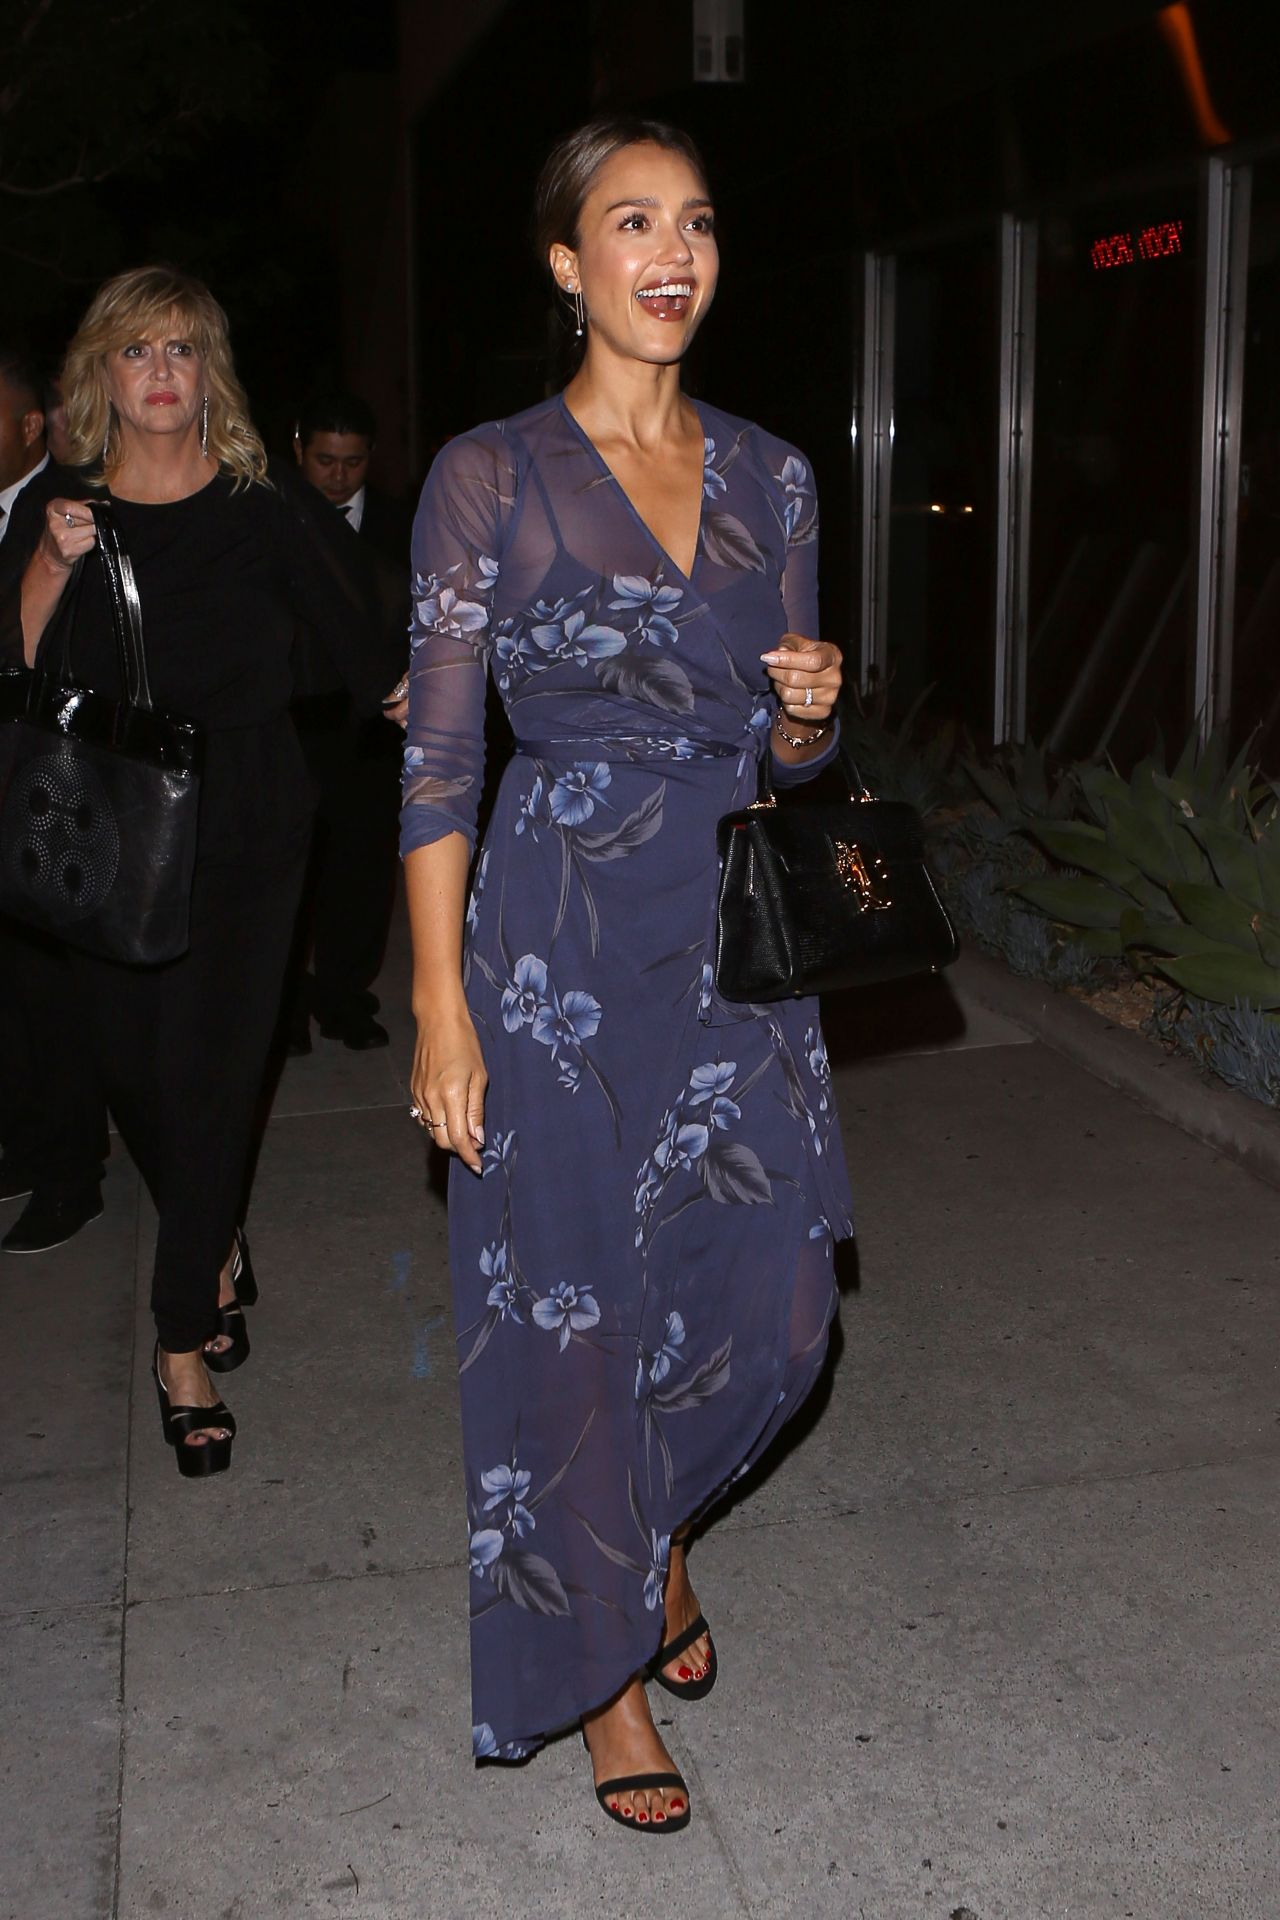 http://celebmafia.com/wp-content/uploads/2016/07/jessica-alba-night-out-style-nice-guy-in-west-hollywood-7-30-2016-9.jpg